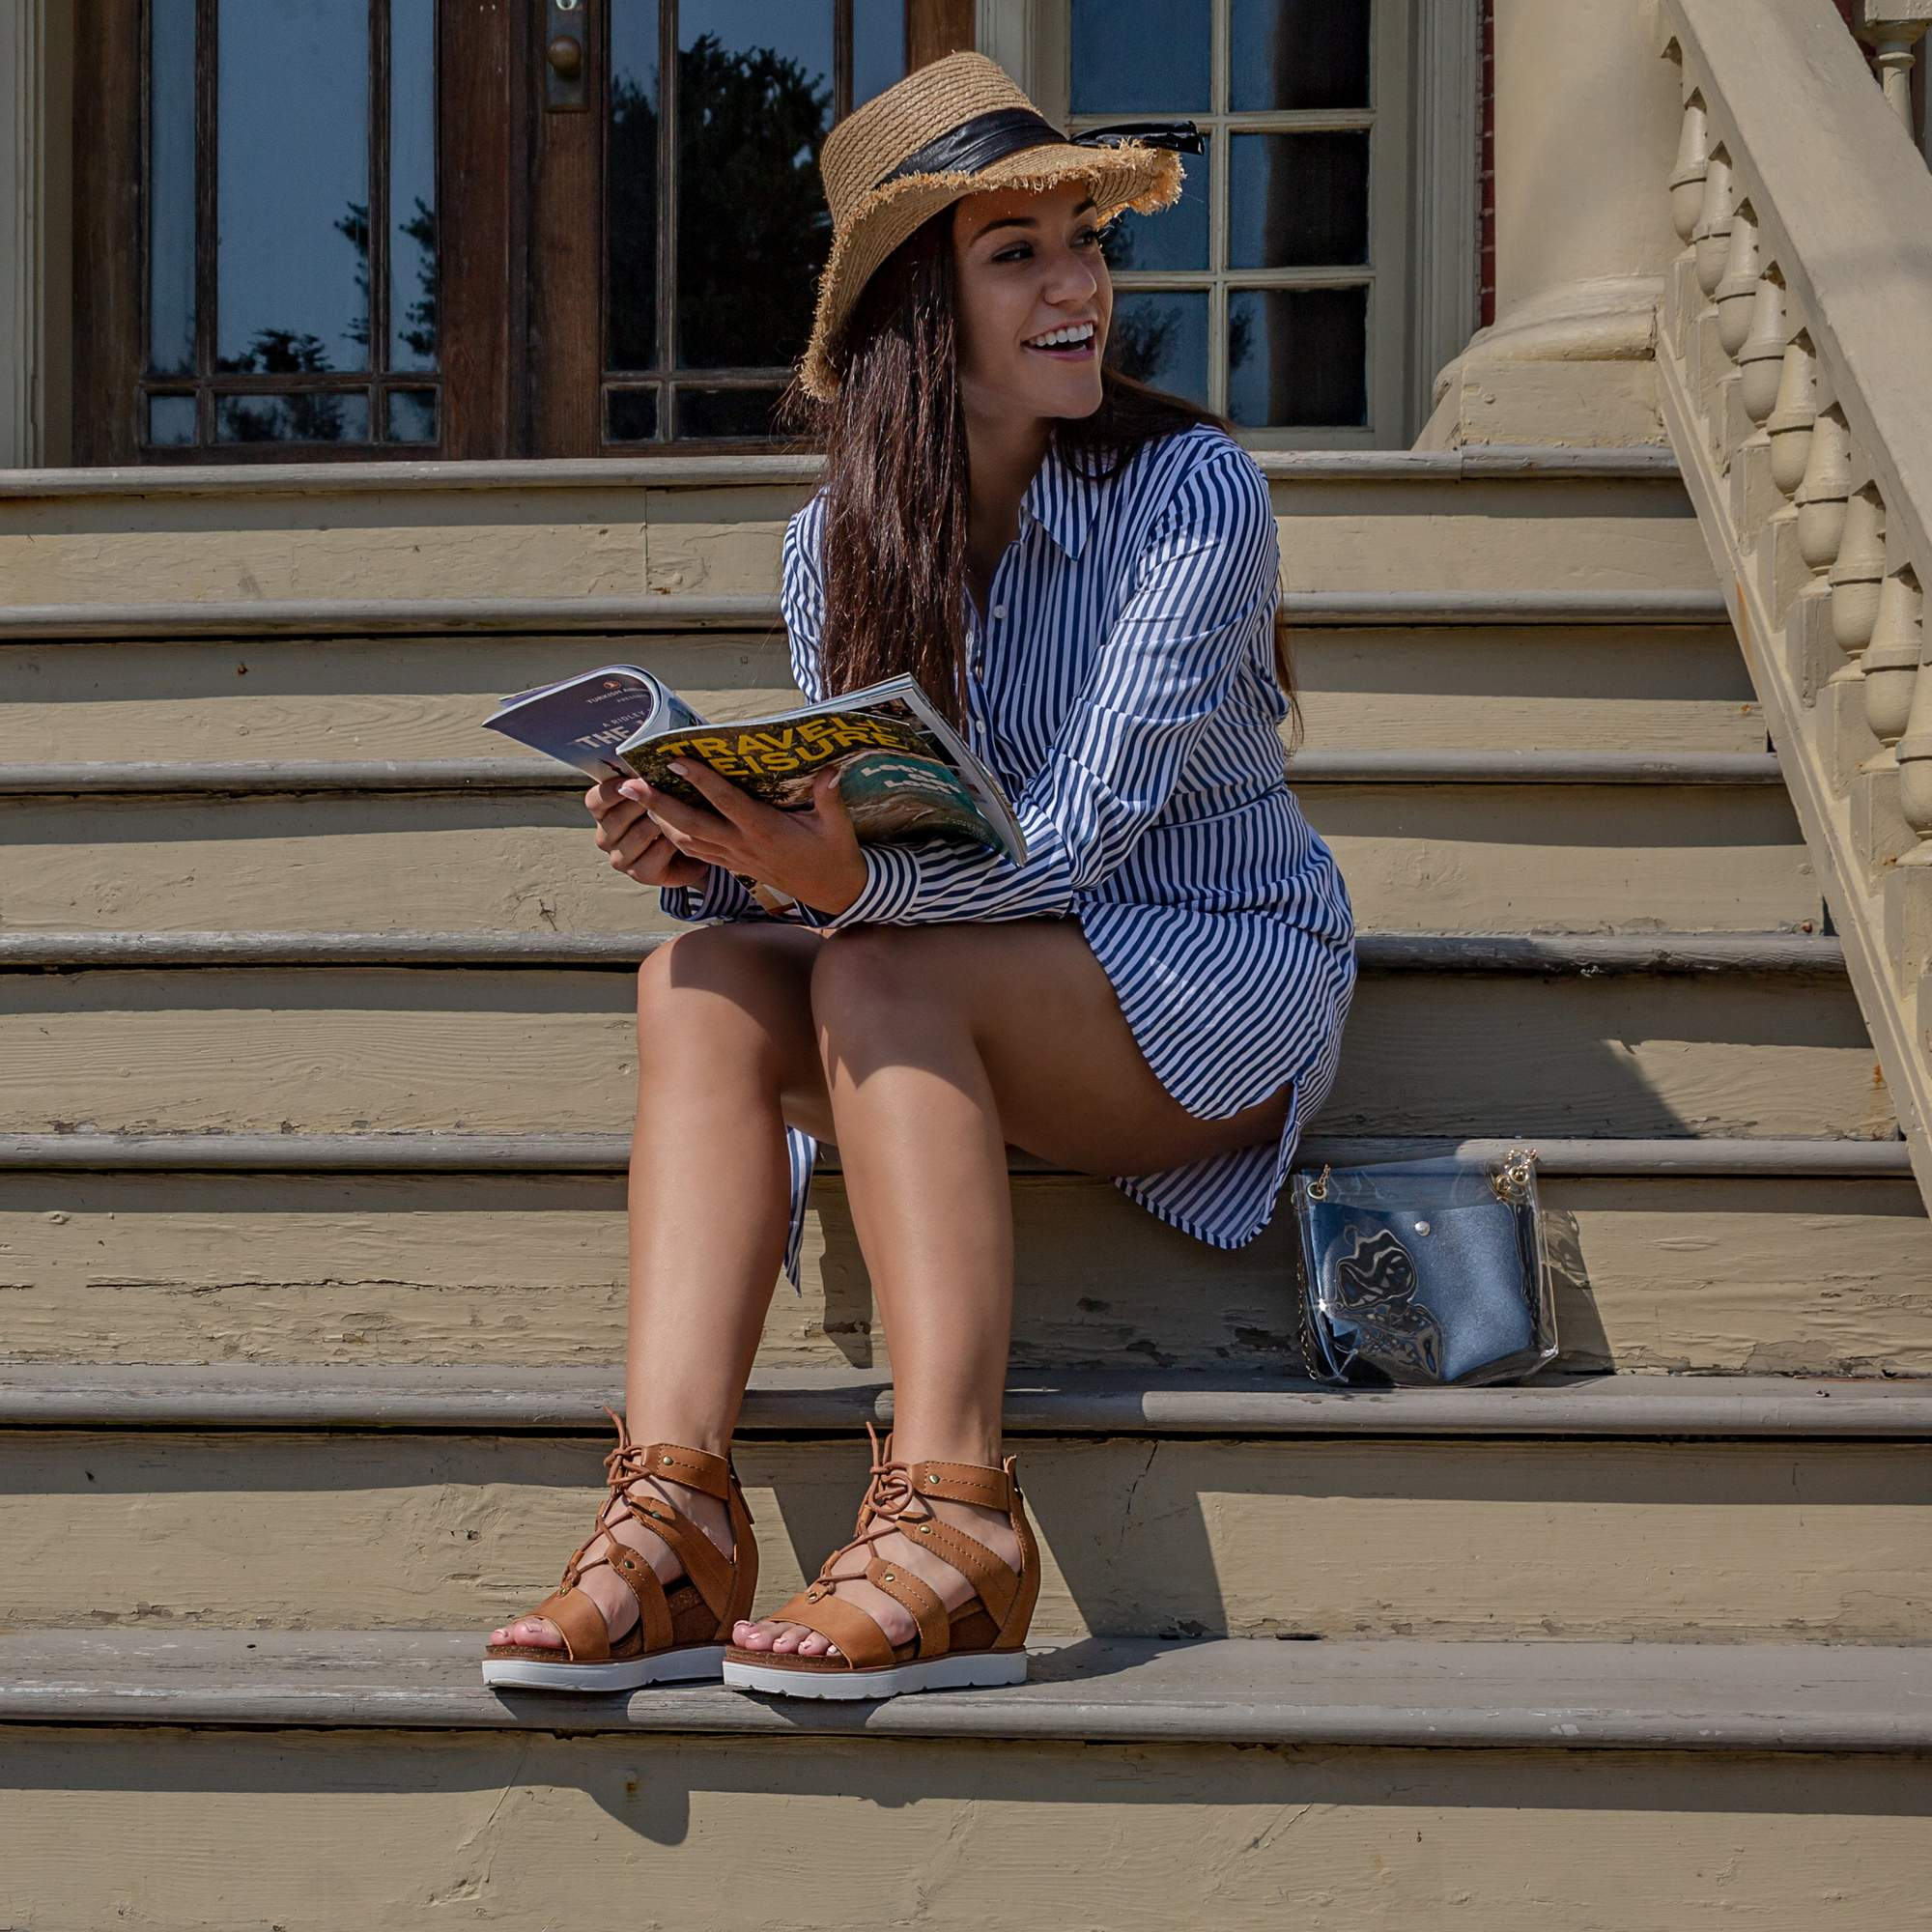 RIVERFRONT in NEW TAN Wedge Sandals